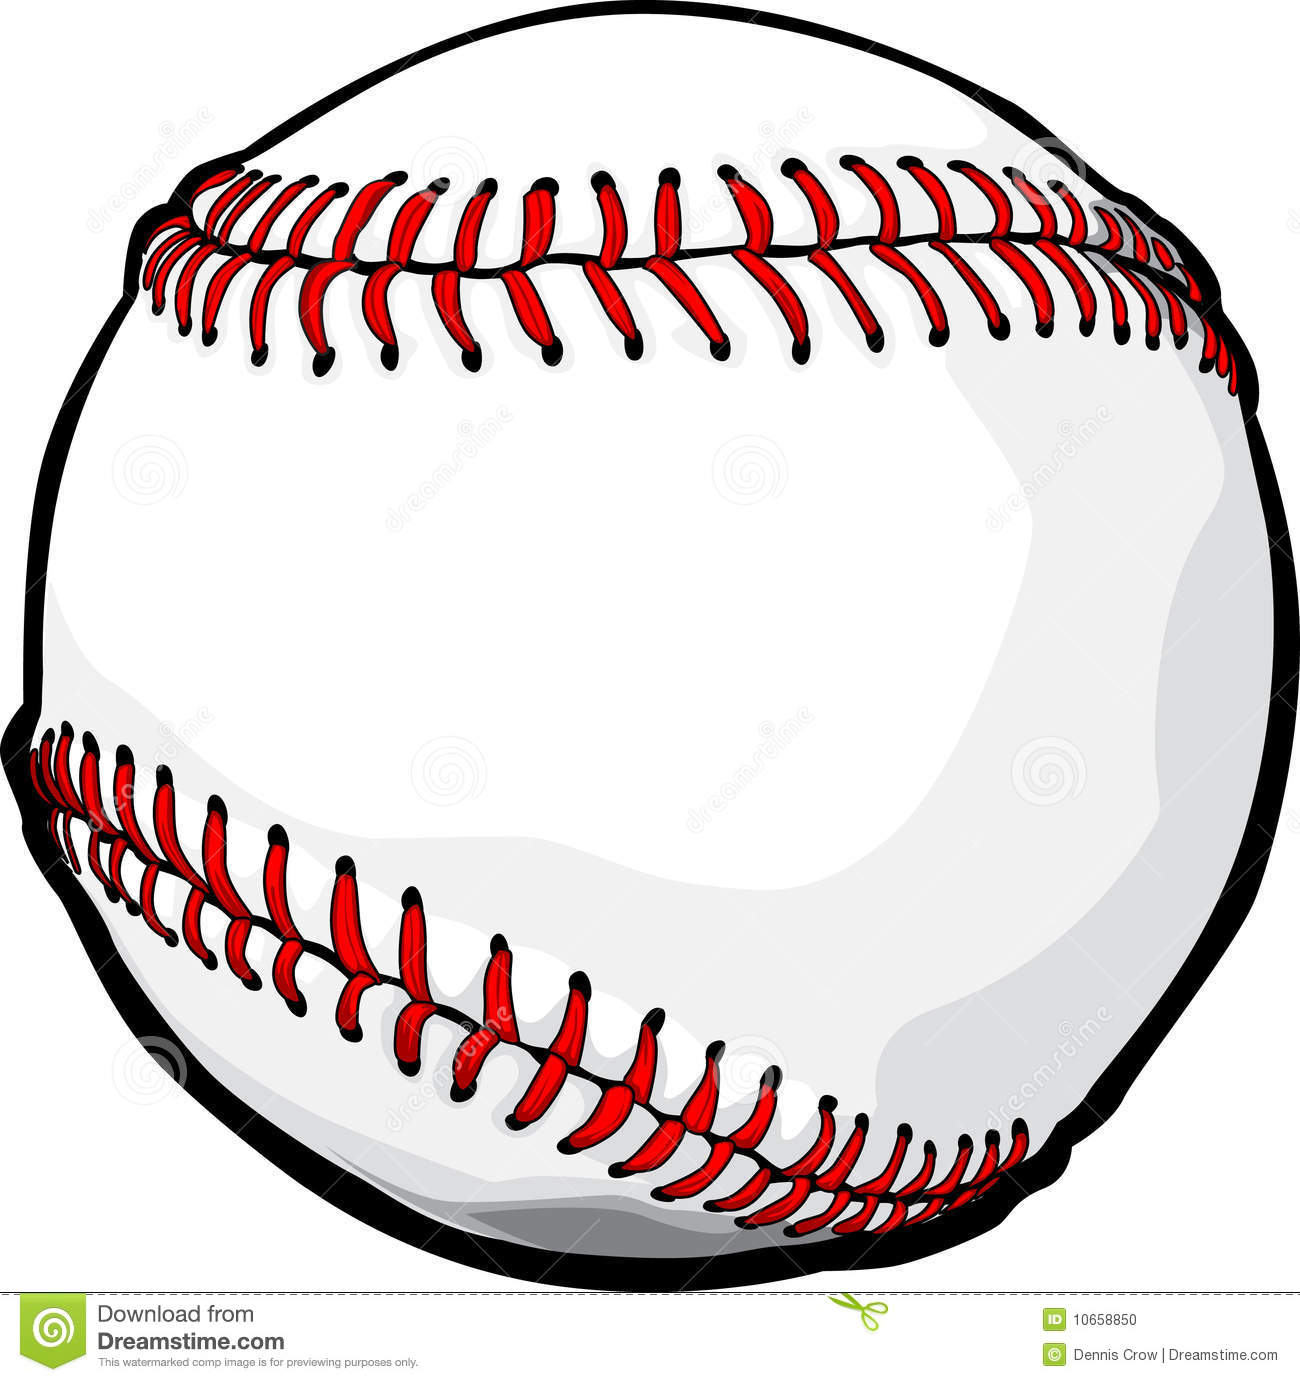 Vector Baseball Ball Image Stock Photo - Image: 10658850